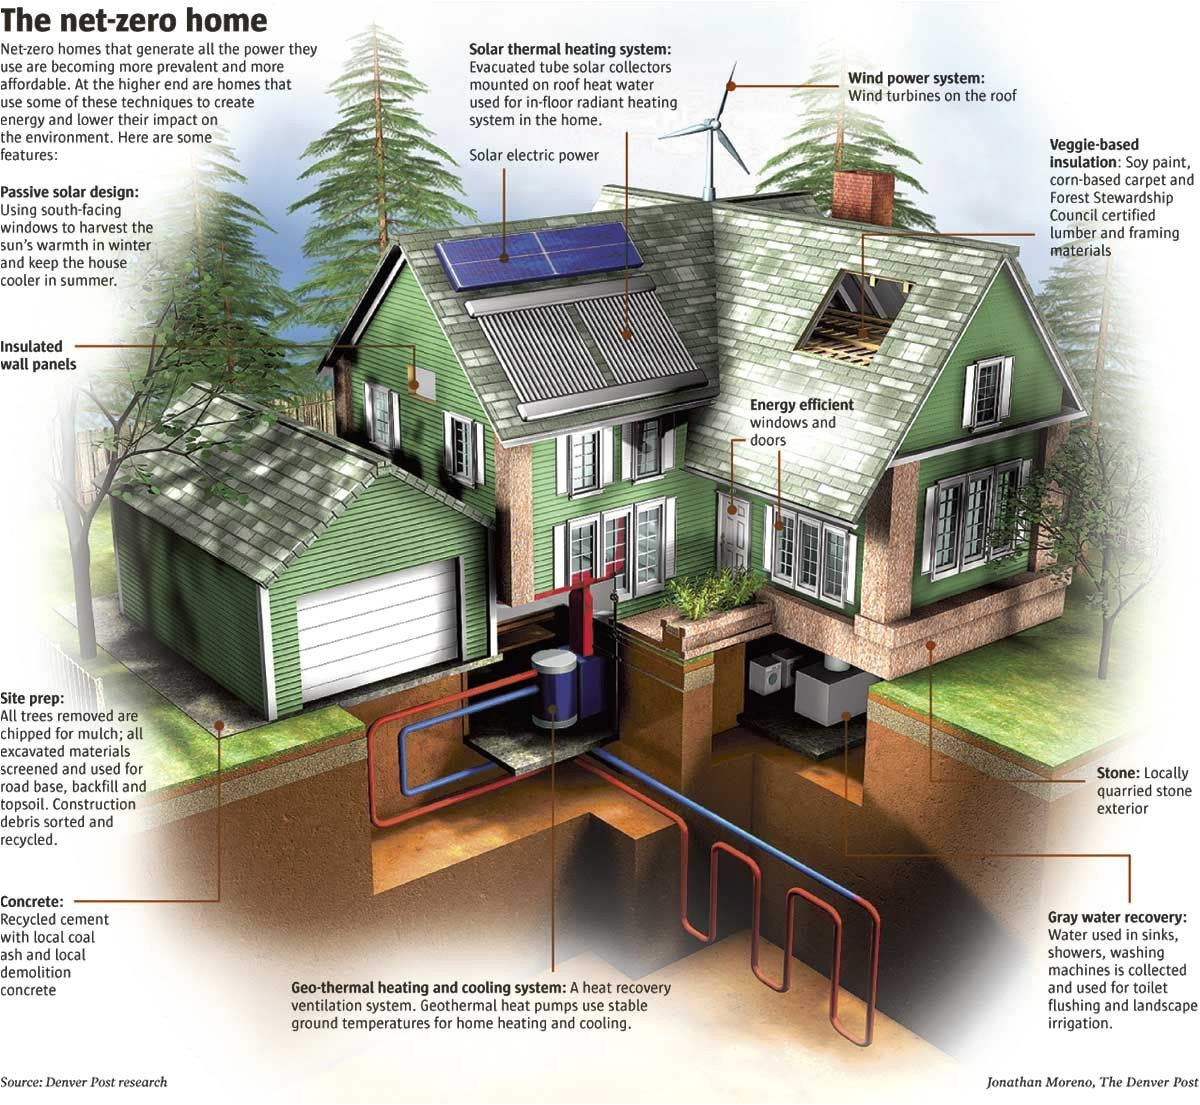 Net Zero Energy Home Plans Net Zero Home Building ... Zero Energy Home Plans on house plans, straw-bale construction, natural ventilation, passive house, passive cooling, solar chimney, solar energy home plans, net zero home plans, earthship home plans, building insulation, light tube, home design plans, hillside home plans, vintage home plans, green home plans, sustainable design, natural building, leadership in energy and environmental design, independent energy home plans, indoor air quality, sustainable home plans, residential home plans, green building, super energy efficient home plans, sustainable architecture, renovation home plans, mountain cabin plans, one-bedroom cottage home plans, zero carbon home plans, heat recovery ventilation, low-energy house, natural light home plans, energy conservation, passive solar building design, earth sheltered home plans, netzero home plans,